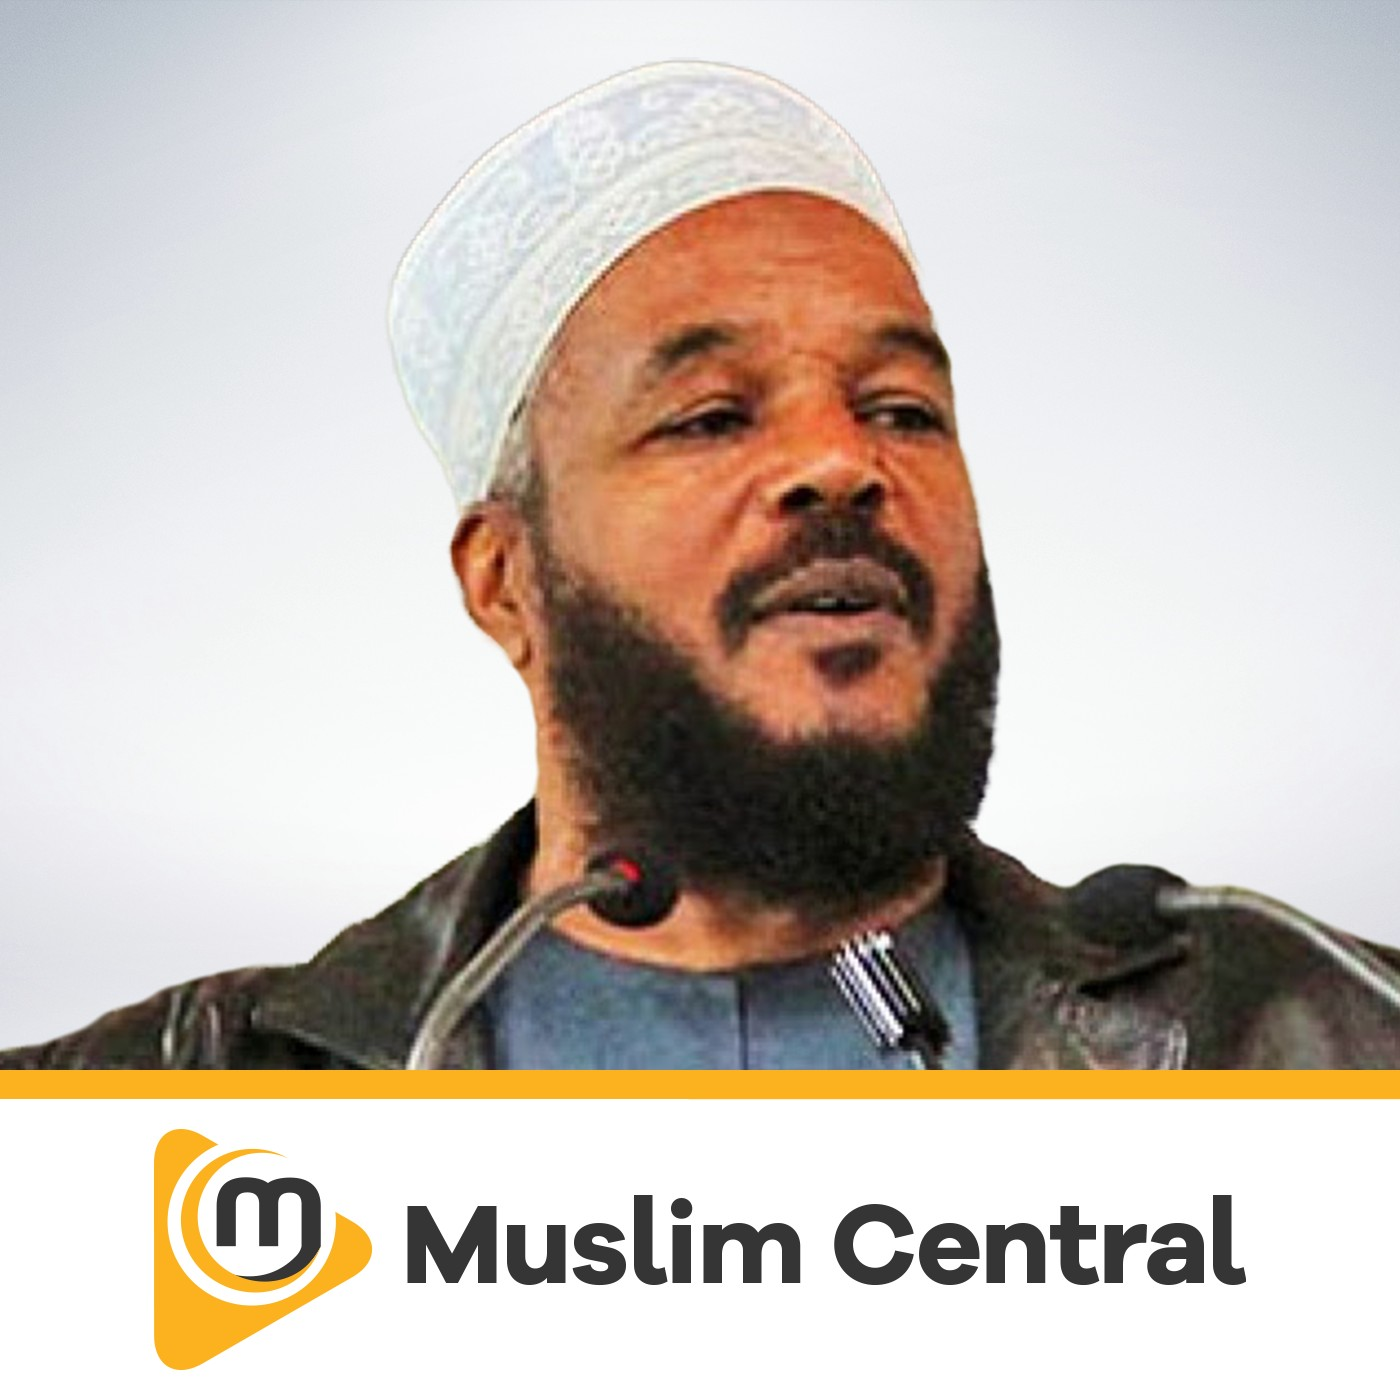 Islam - A Contemporary Solution to Modern Woes